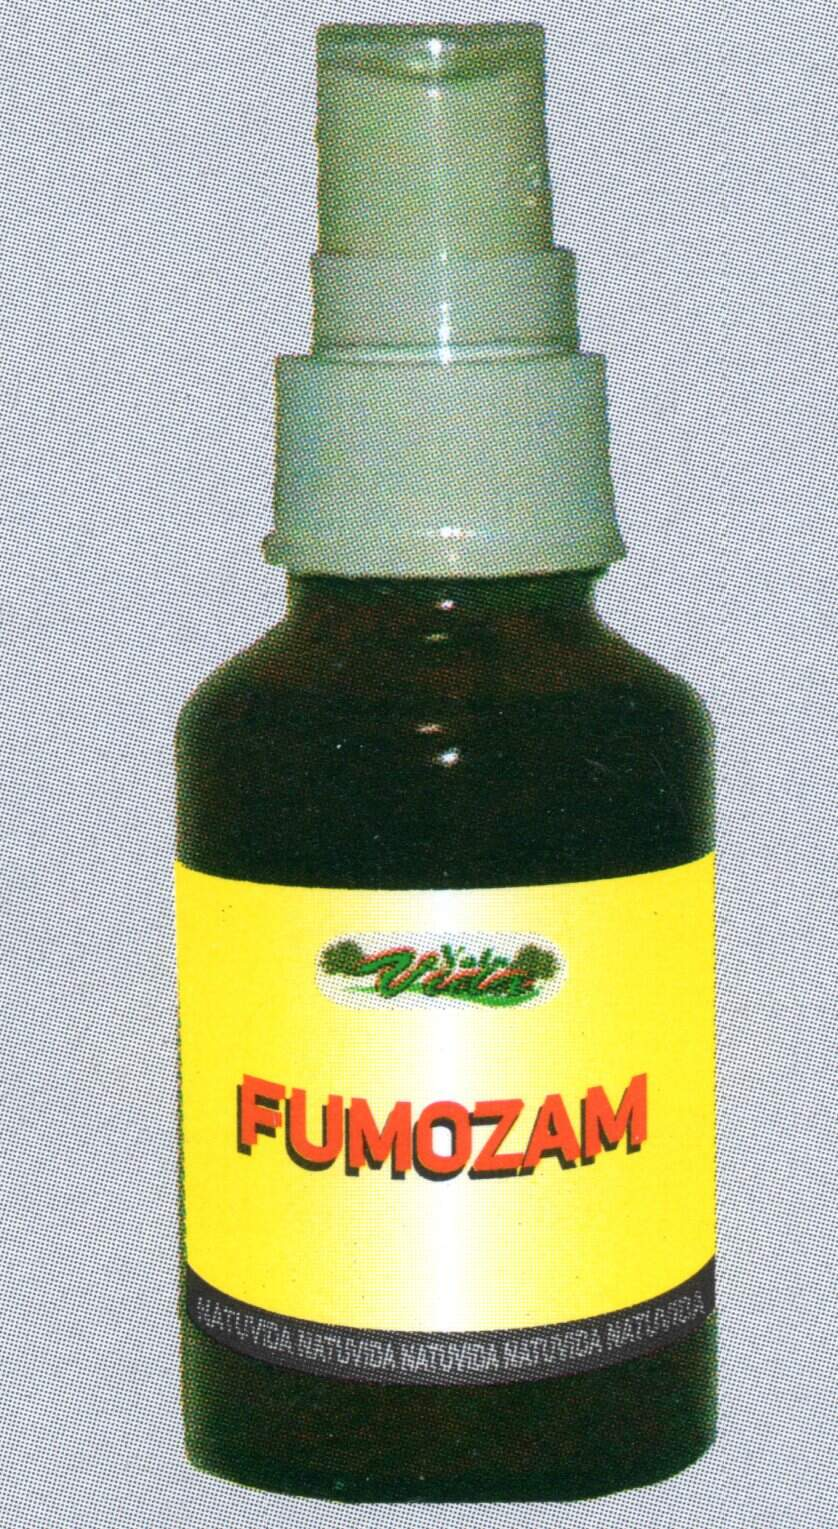 Fumozan 30ml - 90521G